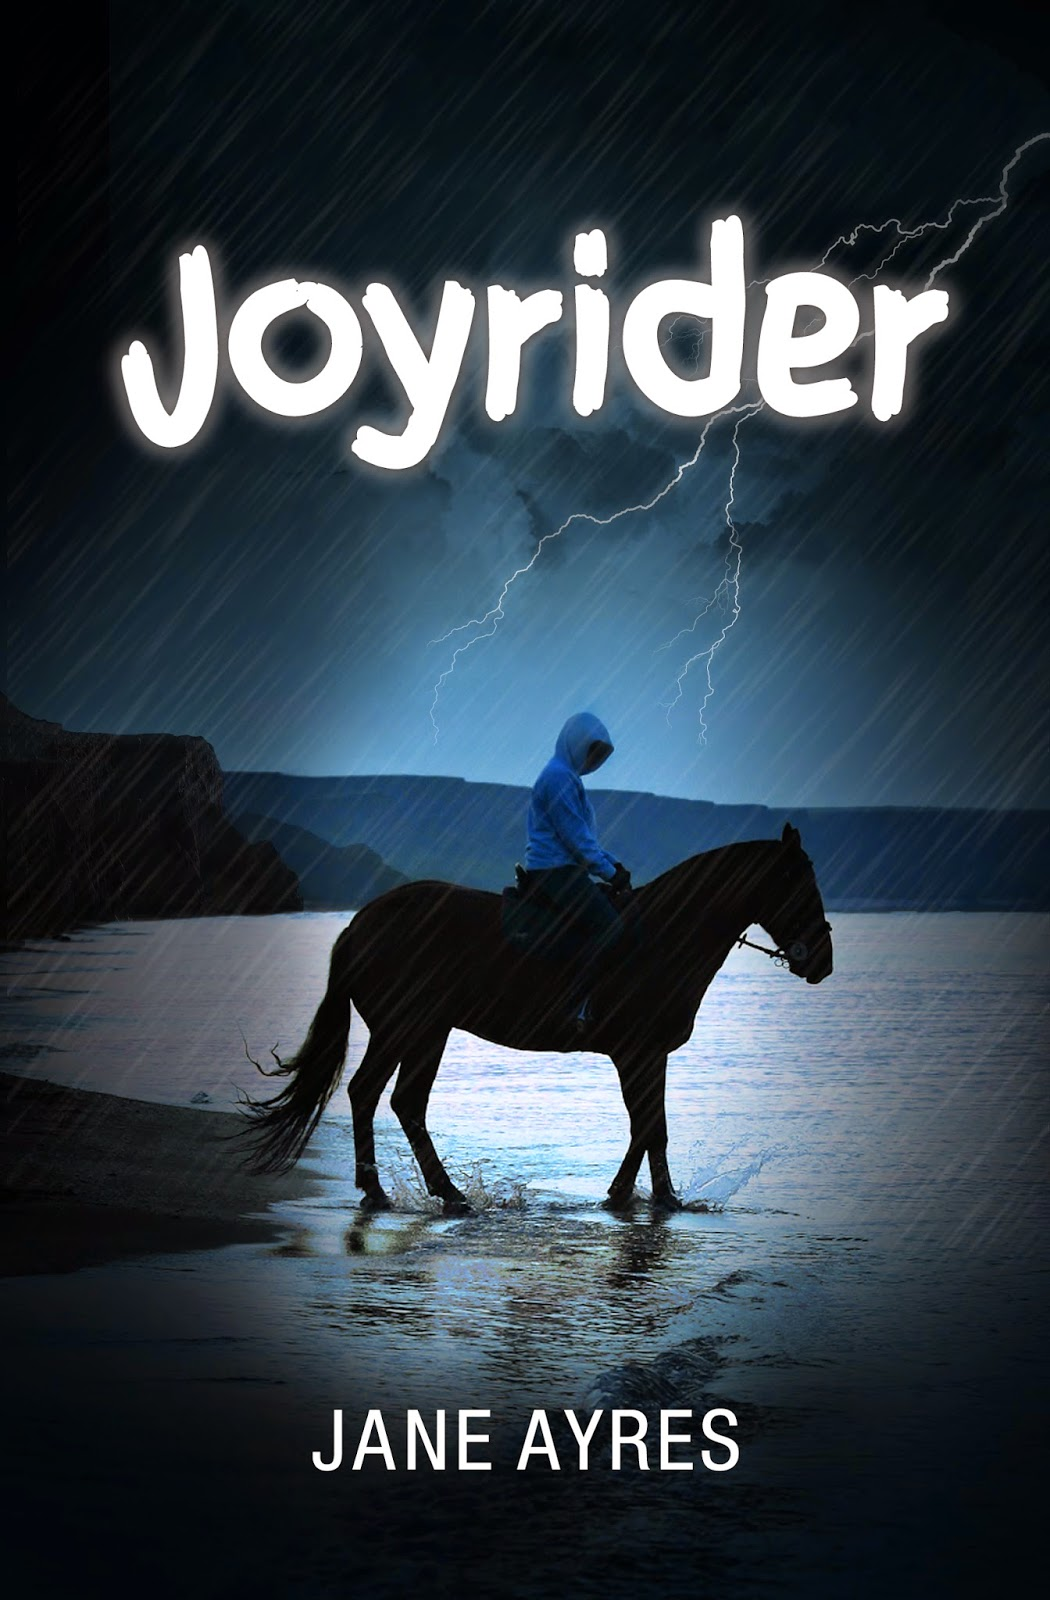 http://www.amazon.co.uk/Joyrider-ebook/dp/B00F7V247Y